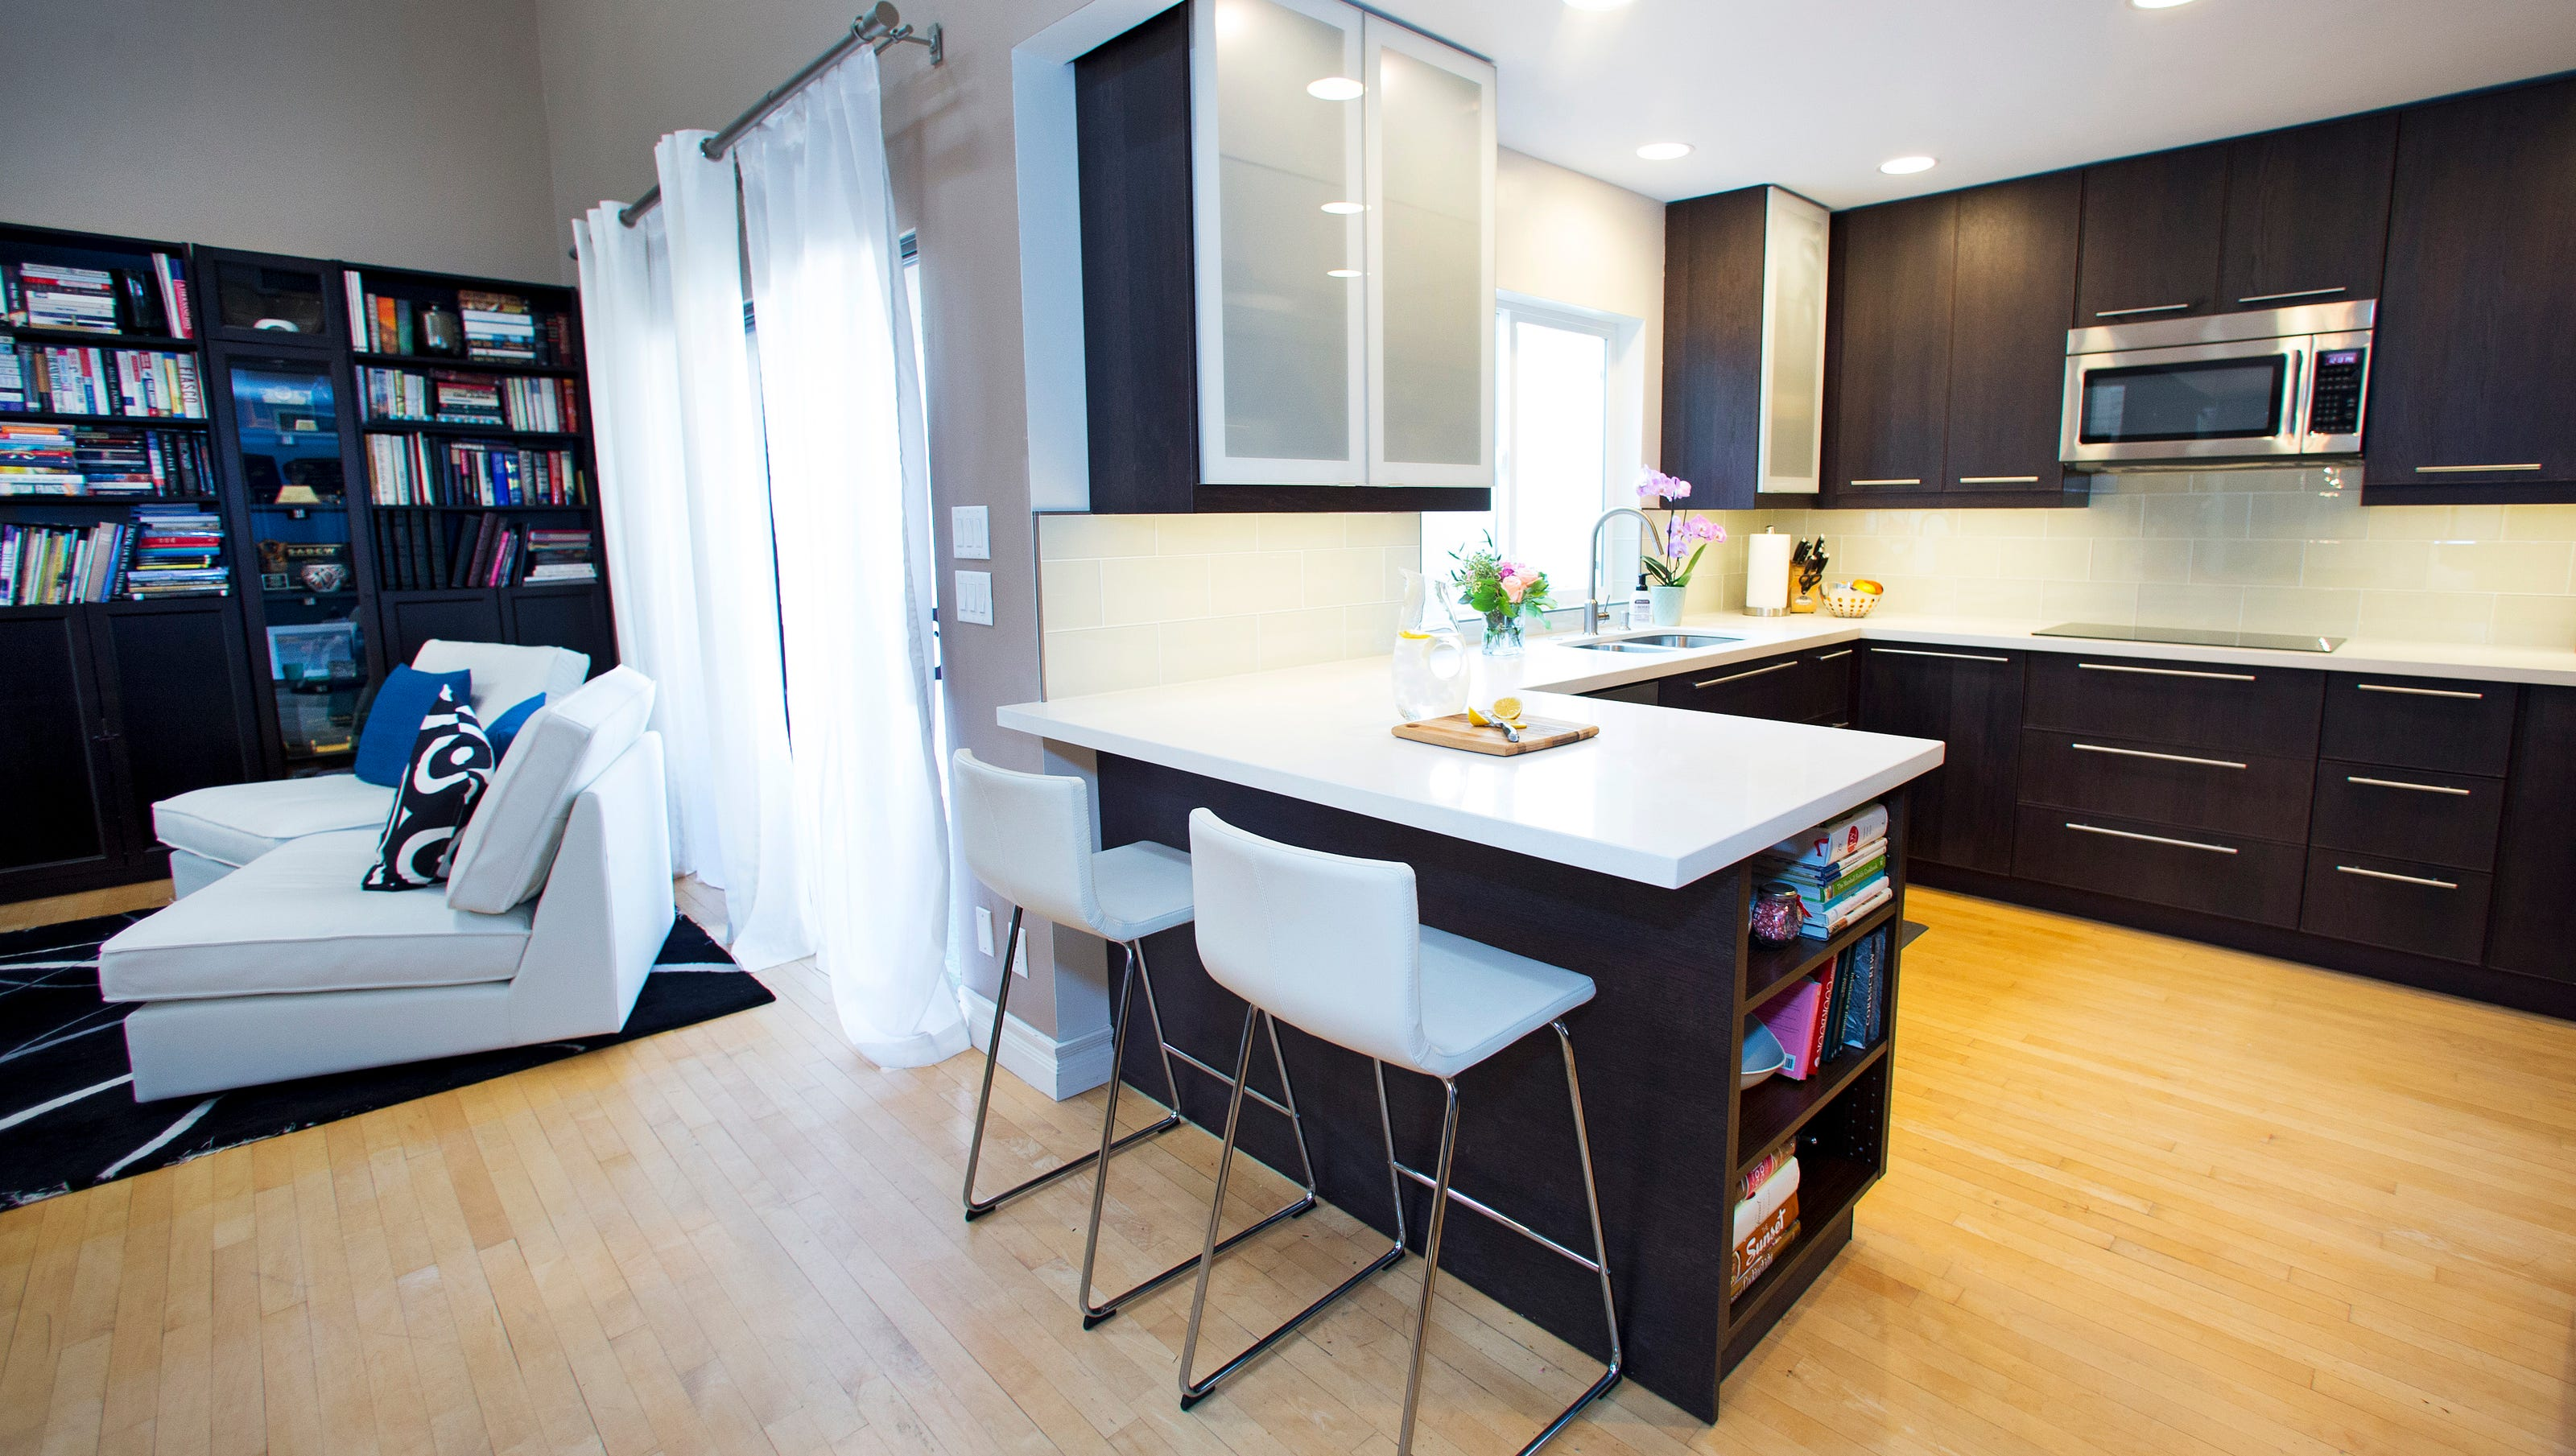 I Spent 35 000 Remodeling My Kitchen And Here Are 10 Big Lessons I Learned